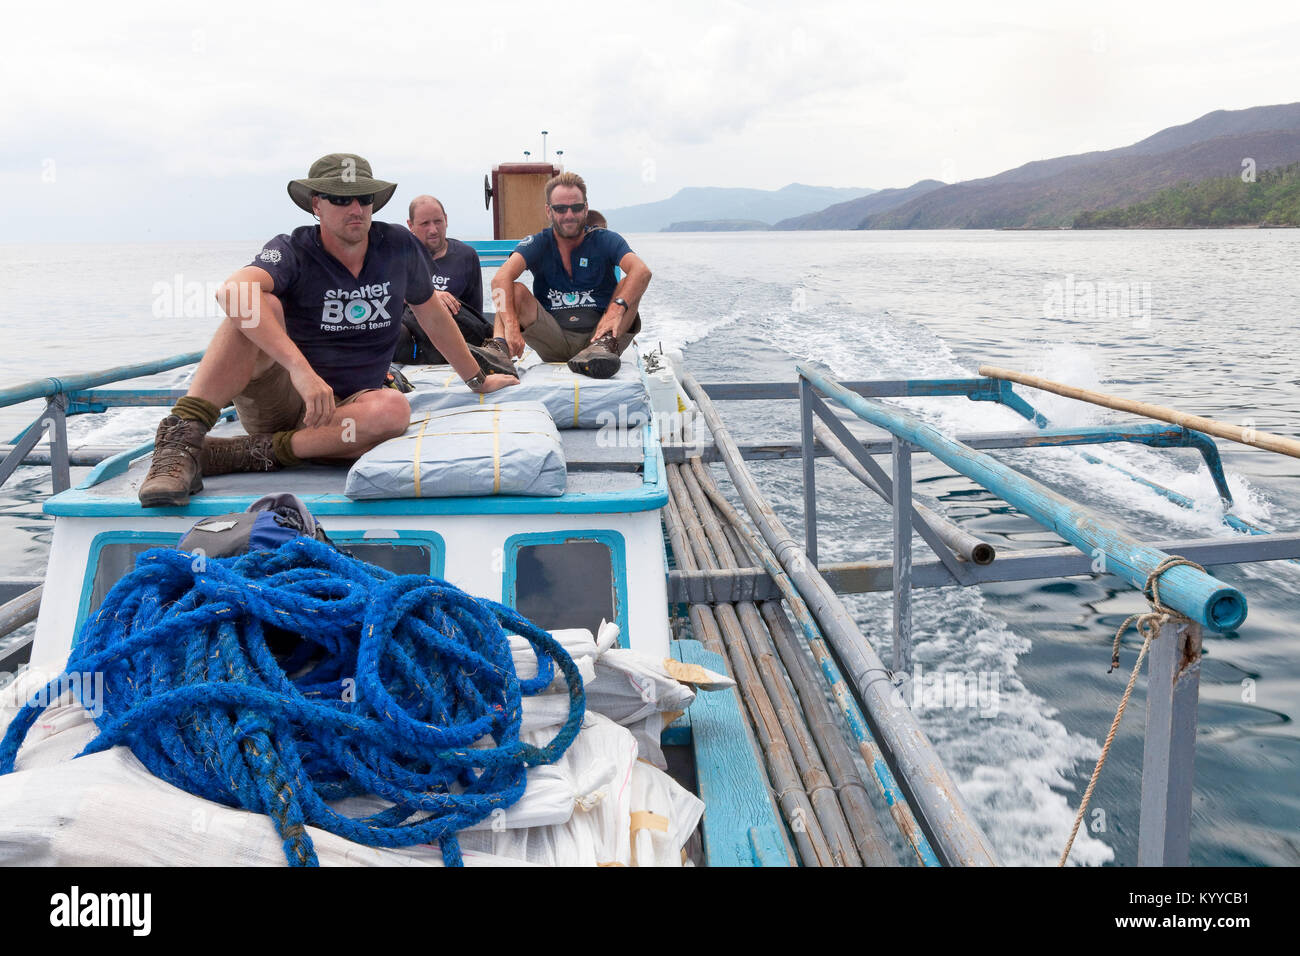 SRT members en route to Rapu Rapu island, Albay, Philippines following Typhoon Glenda/Rammasun 2014. L-R Matt Roberts; - Stock Image